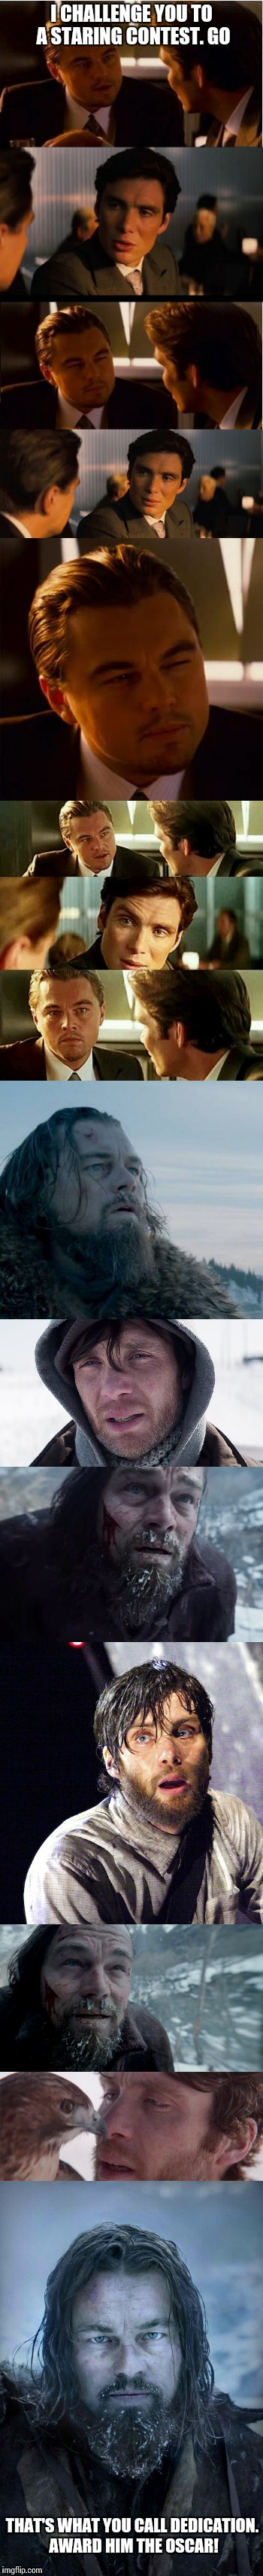 The most epic staring contest of all time! | I CHALLENGE YOU TO A STARING CONTEST. GO THAT'S WHAT YOU CALL DEDICATION. AWARD HIM THE OSCAR! | image tagged in memes,leonardo dicaprio,the revenant | made w/ Imgflip meme maker